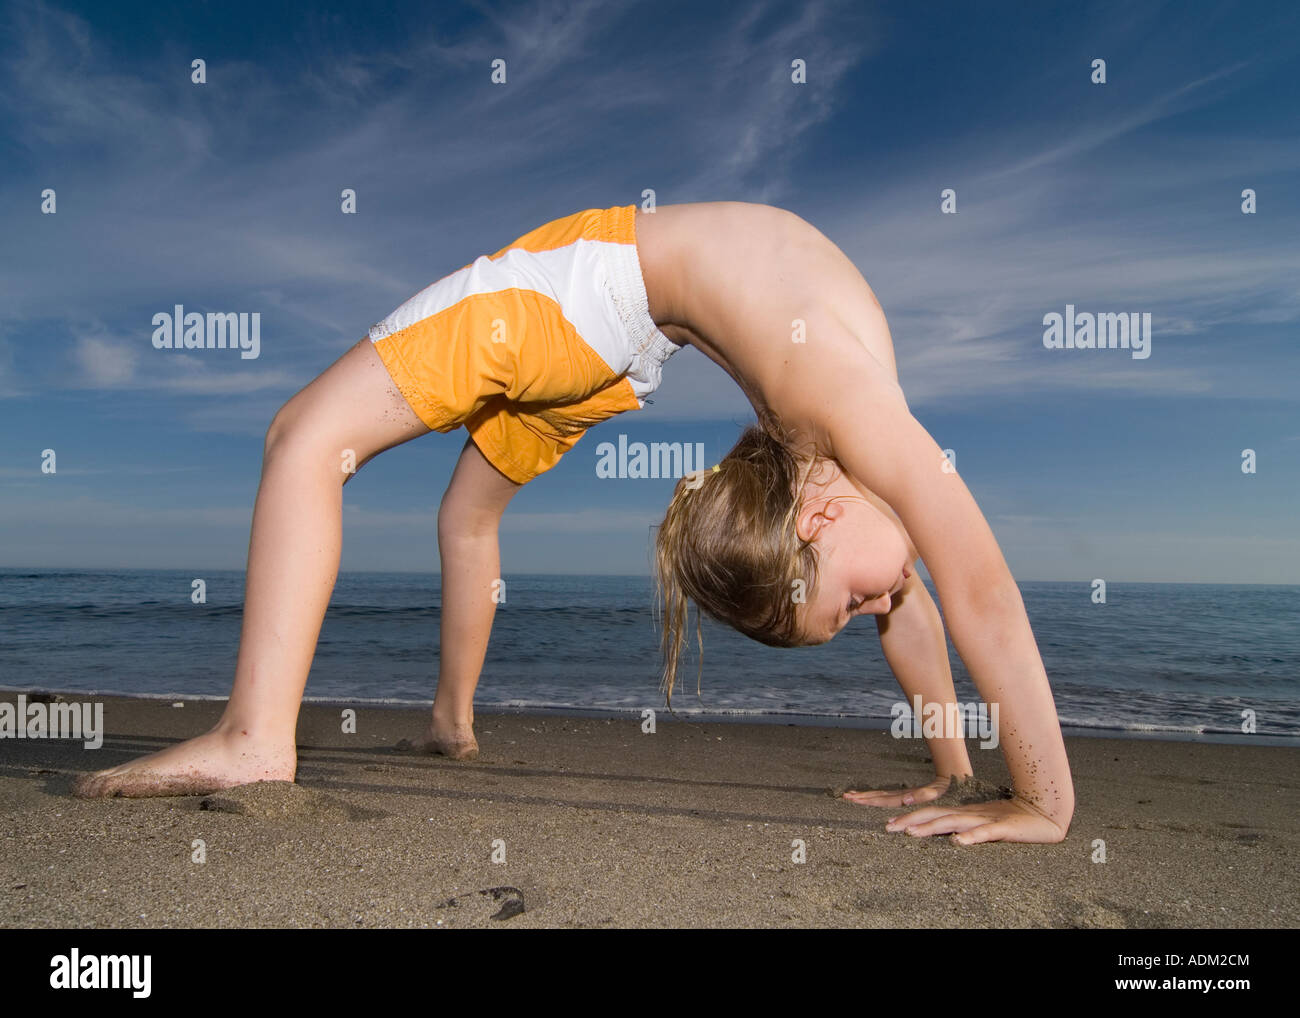 young girl exercising on the beach - Stock Image